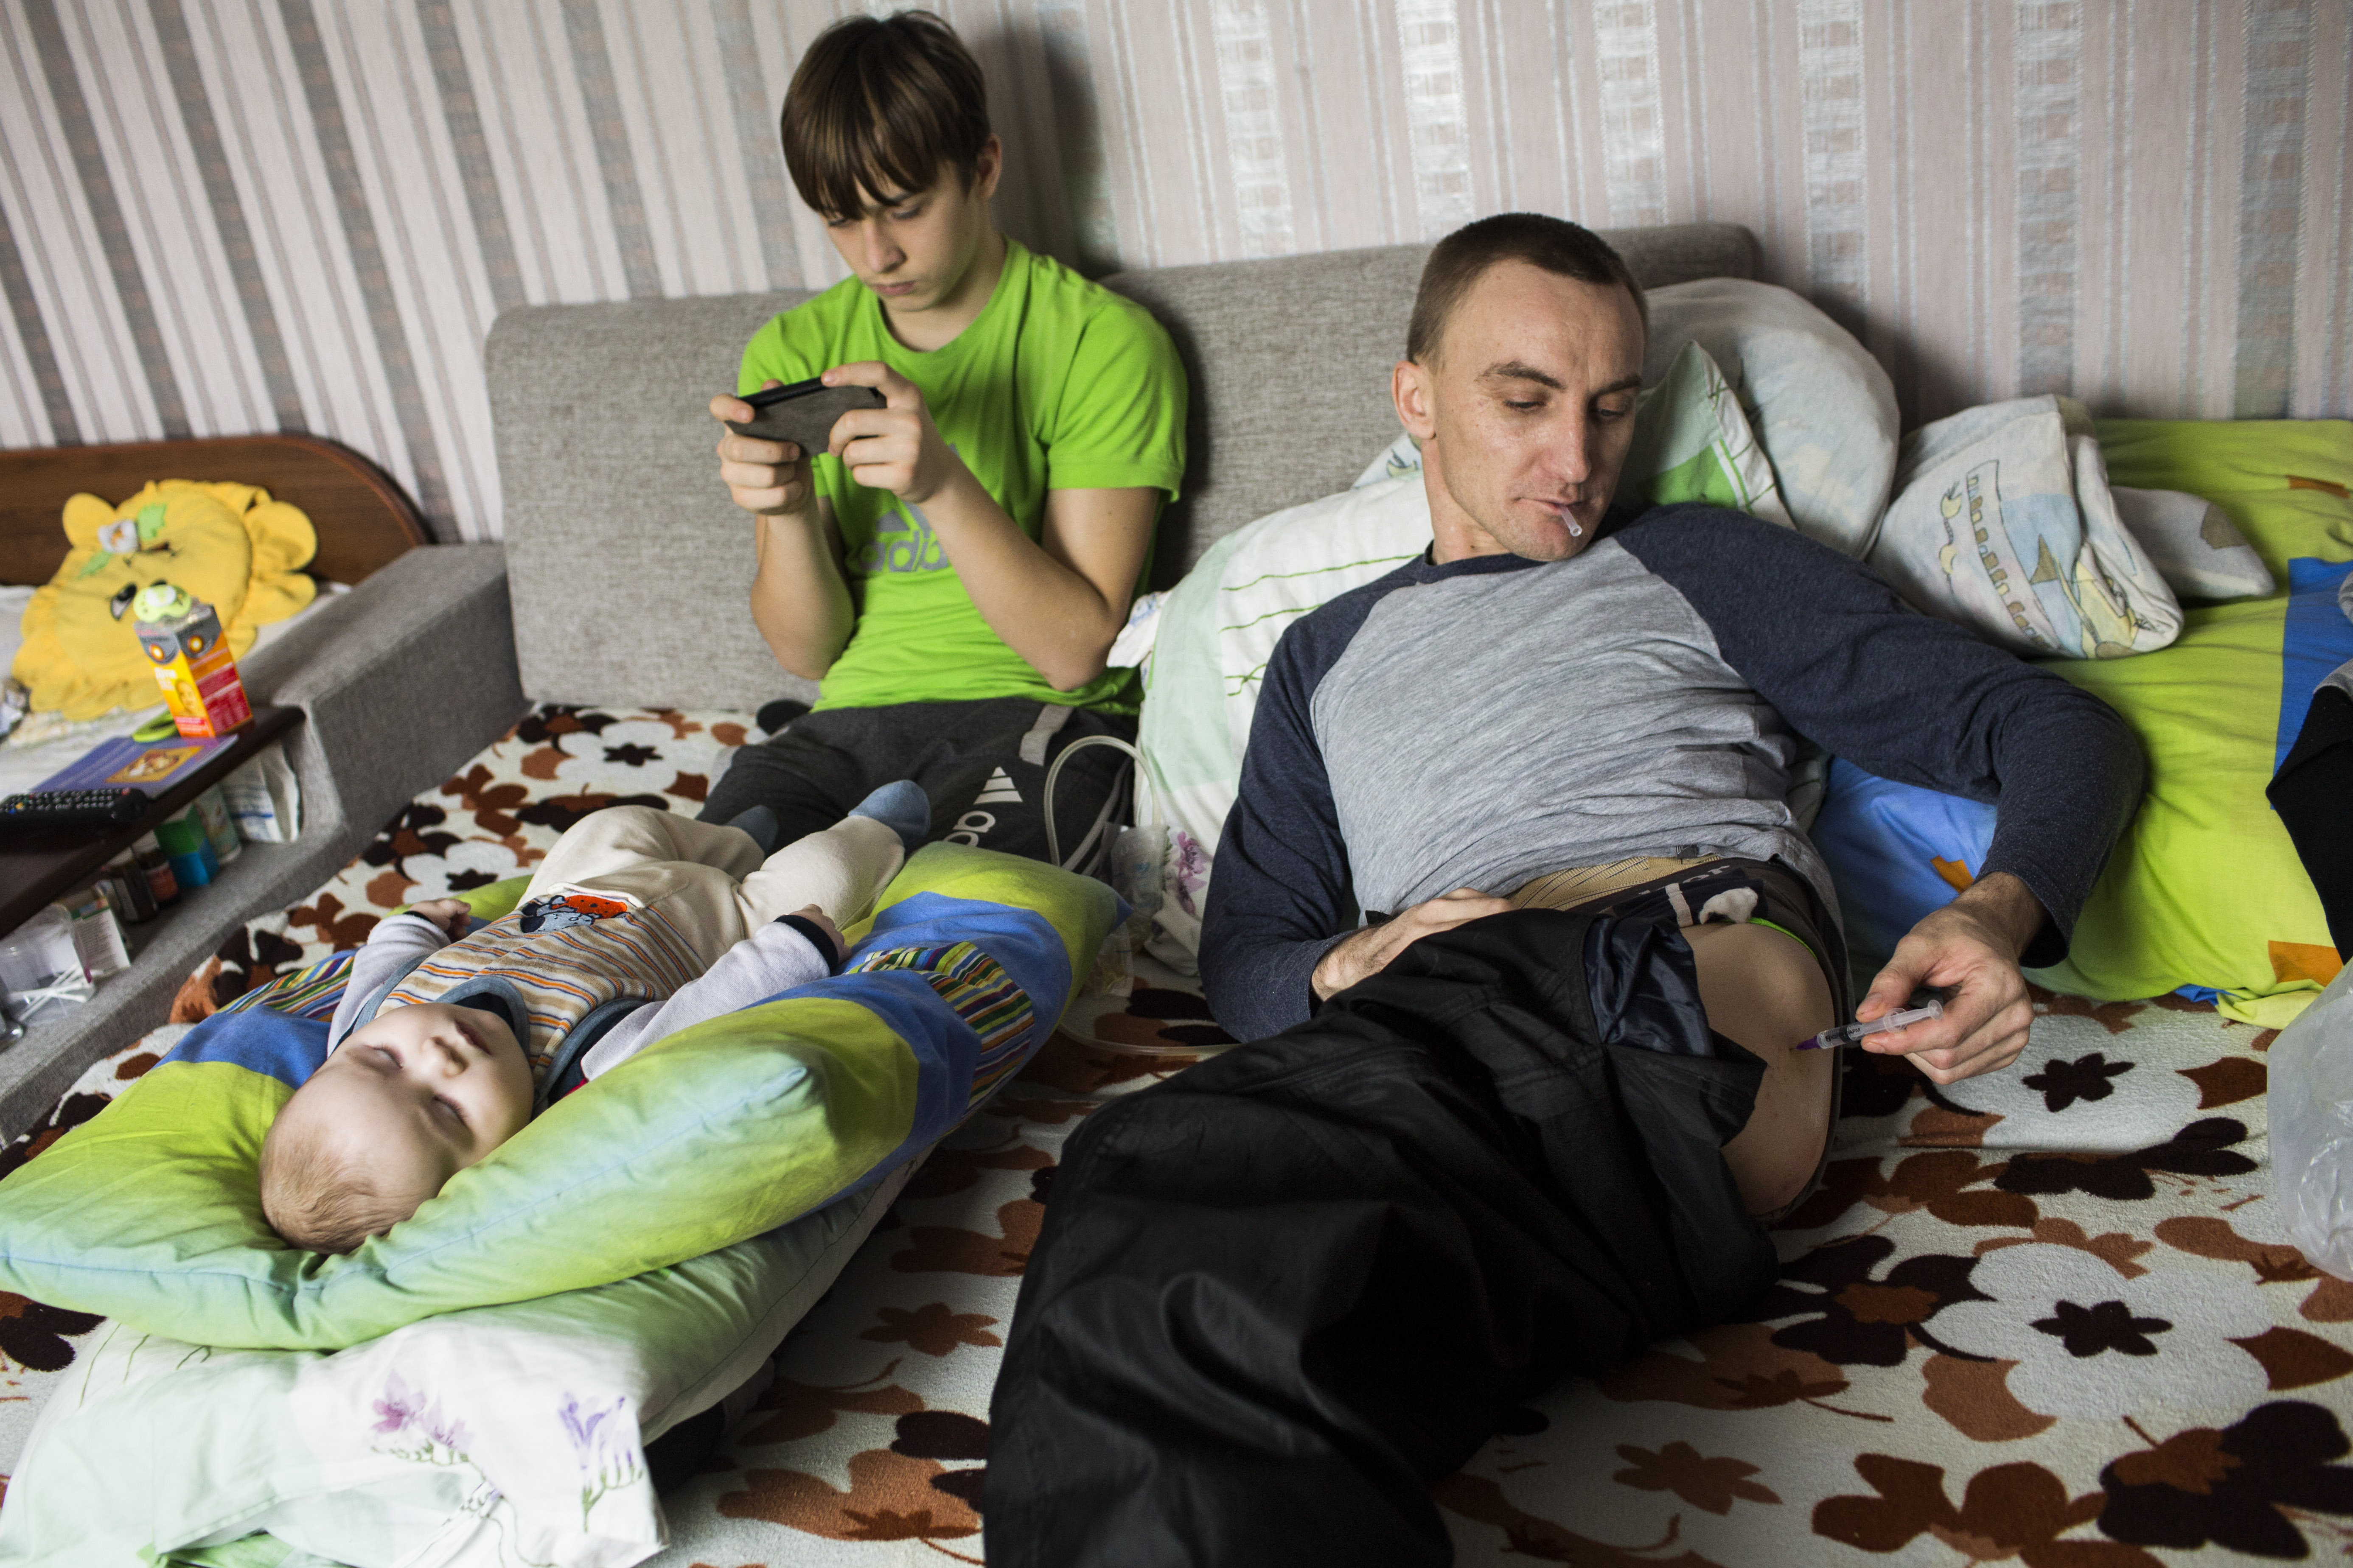 """Honcharovsky administers a dose of nalbuphine, a powerful painkiller, as his infant son, Nazar, sleeps in their home in Teofipol, Ukraine, Feb. 6, 2015. A daily dose consists of one or two injections. At times, he administers up to six injections in a day. """"I taught myself how to give injections so I don't wake up my son, wife or mother in the middle of the night,"""" he said."""